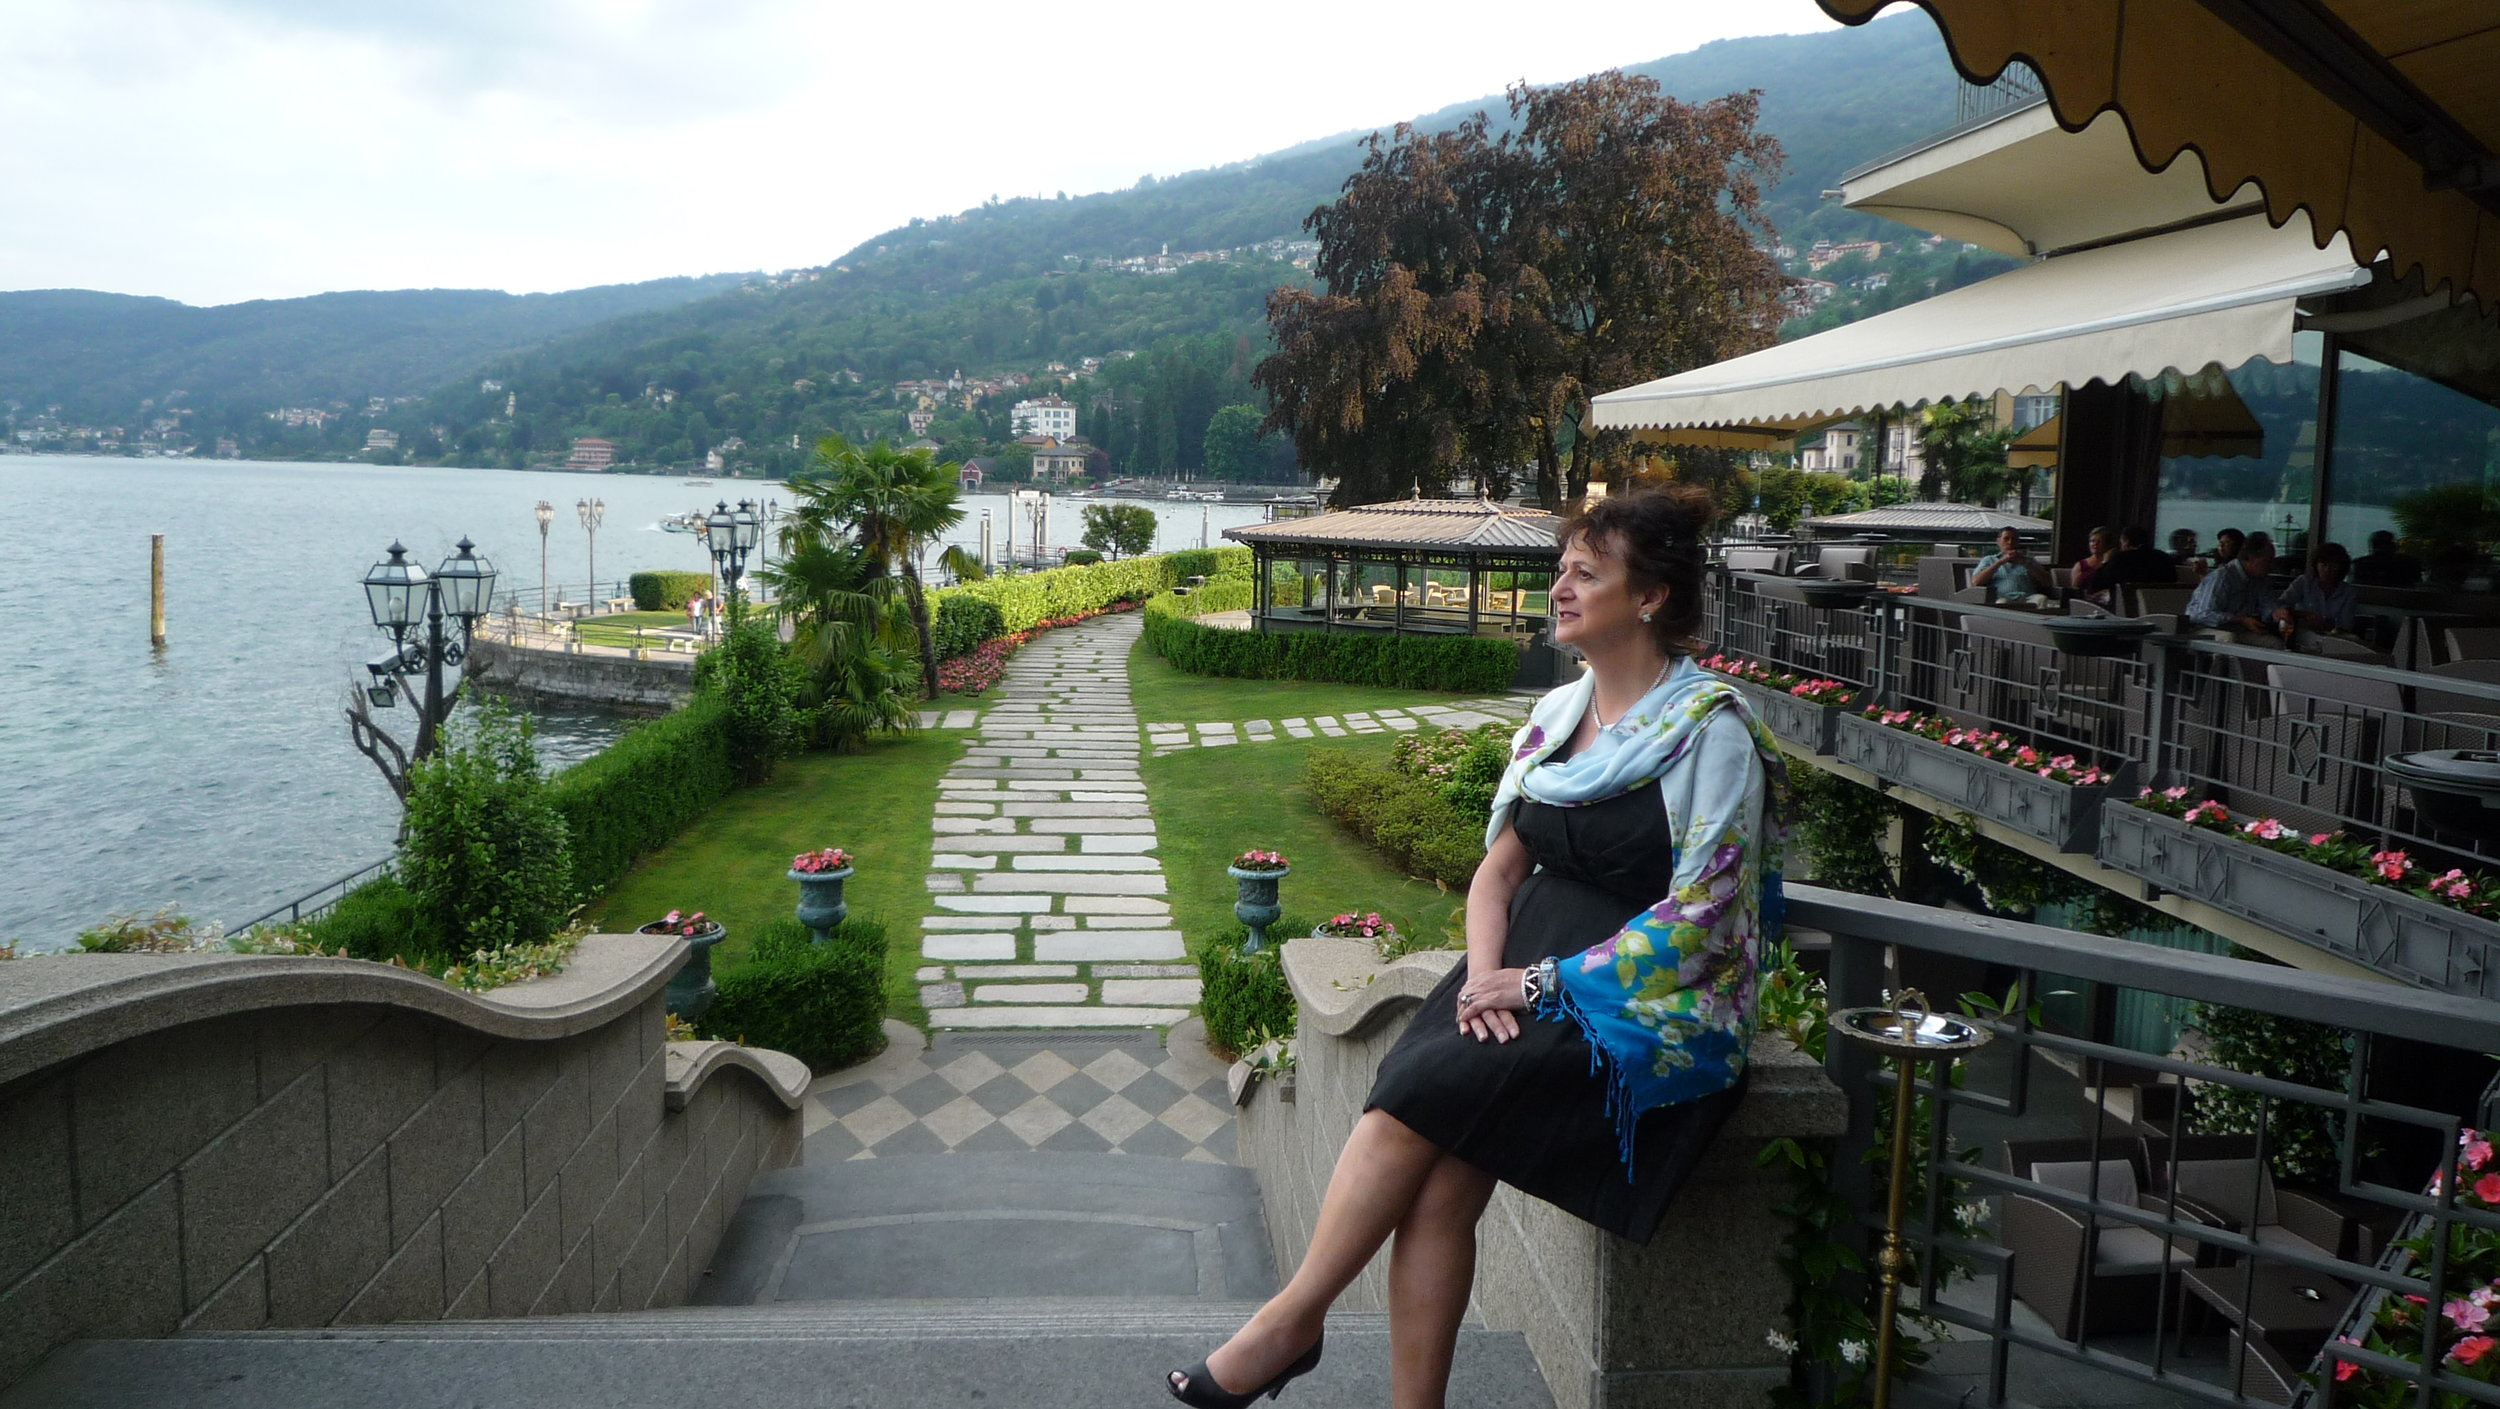 Here I am in Northern Italy at Lake Como. Both of my parents were born in Calabria. My Father, Lorenzo Anthony, was a 'Shoemaker' and he made his own wine in the basement wine cellar with about 8 large barrels. My mom, Maria Dominca, enjoyed playing the piano and writing her own music as well as being a a tailor. Our home was filled with traditional Italian foods and family events. My Grandfather , Giuseppe Adamo, was a composer and he wrote the Presidential March for Eisenhower. My grandmother Angela Bonacci was the town weaver and grew her own silk worms and sourced her own fibers. I've had to wait to begin my true creative journey, but it has been well worth the wait, on many levels.